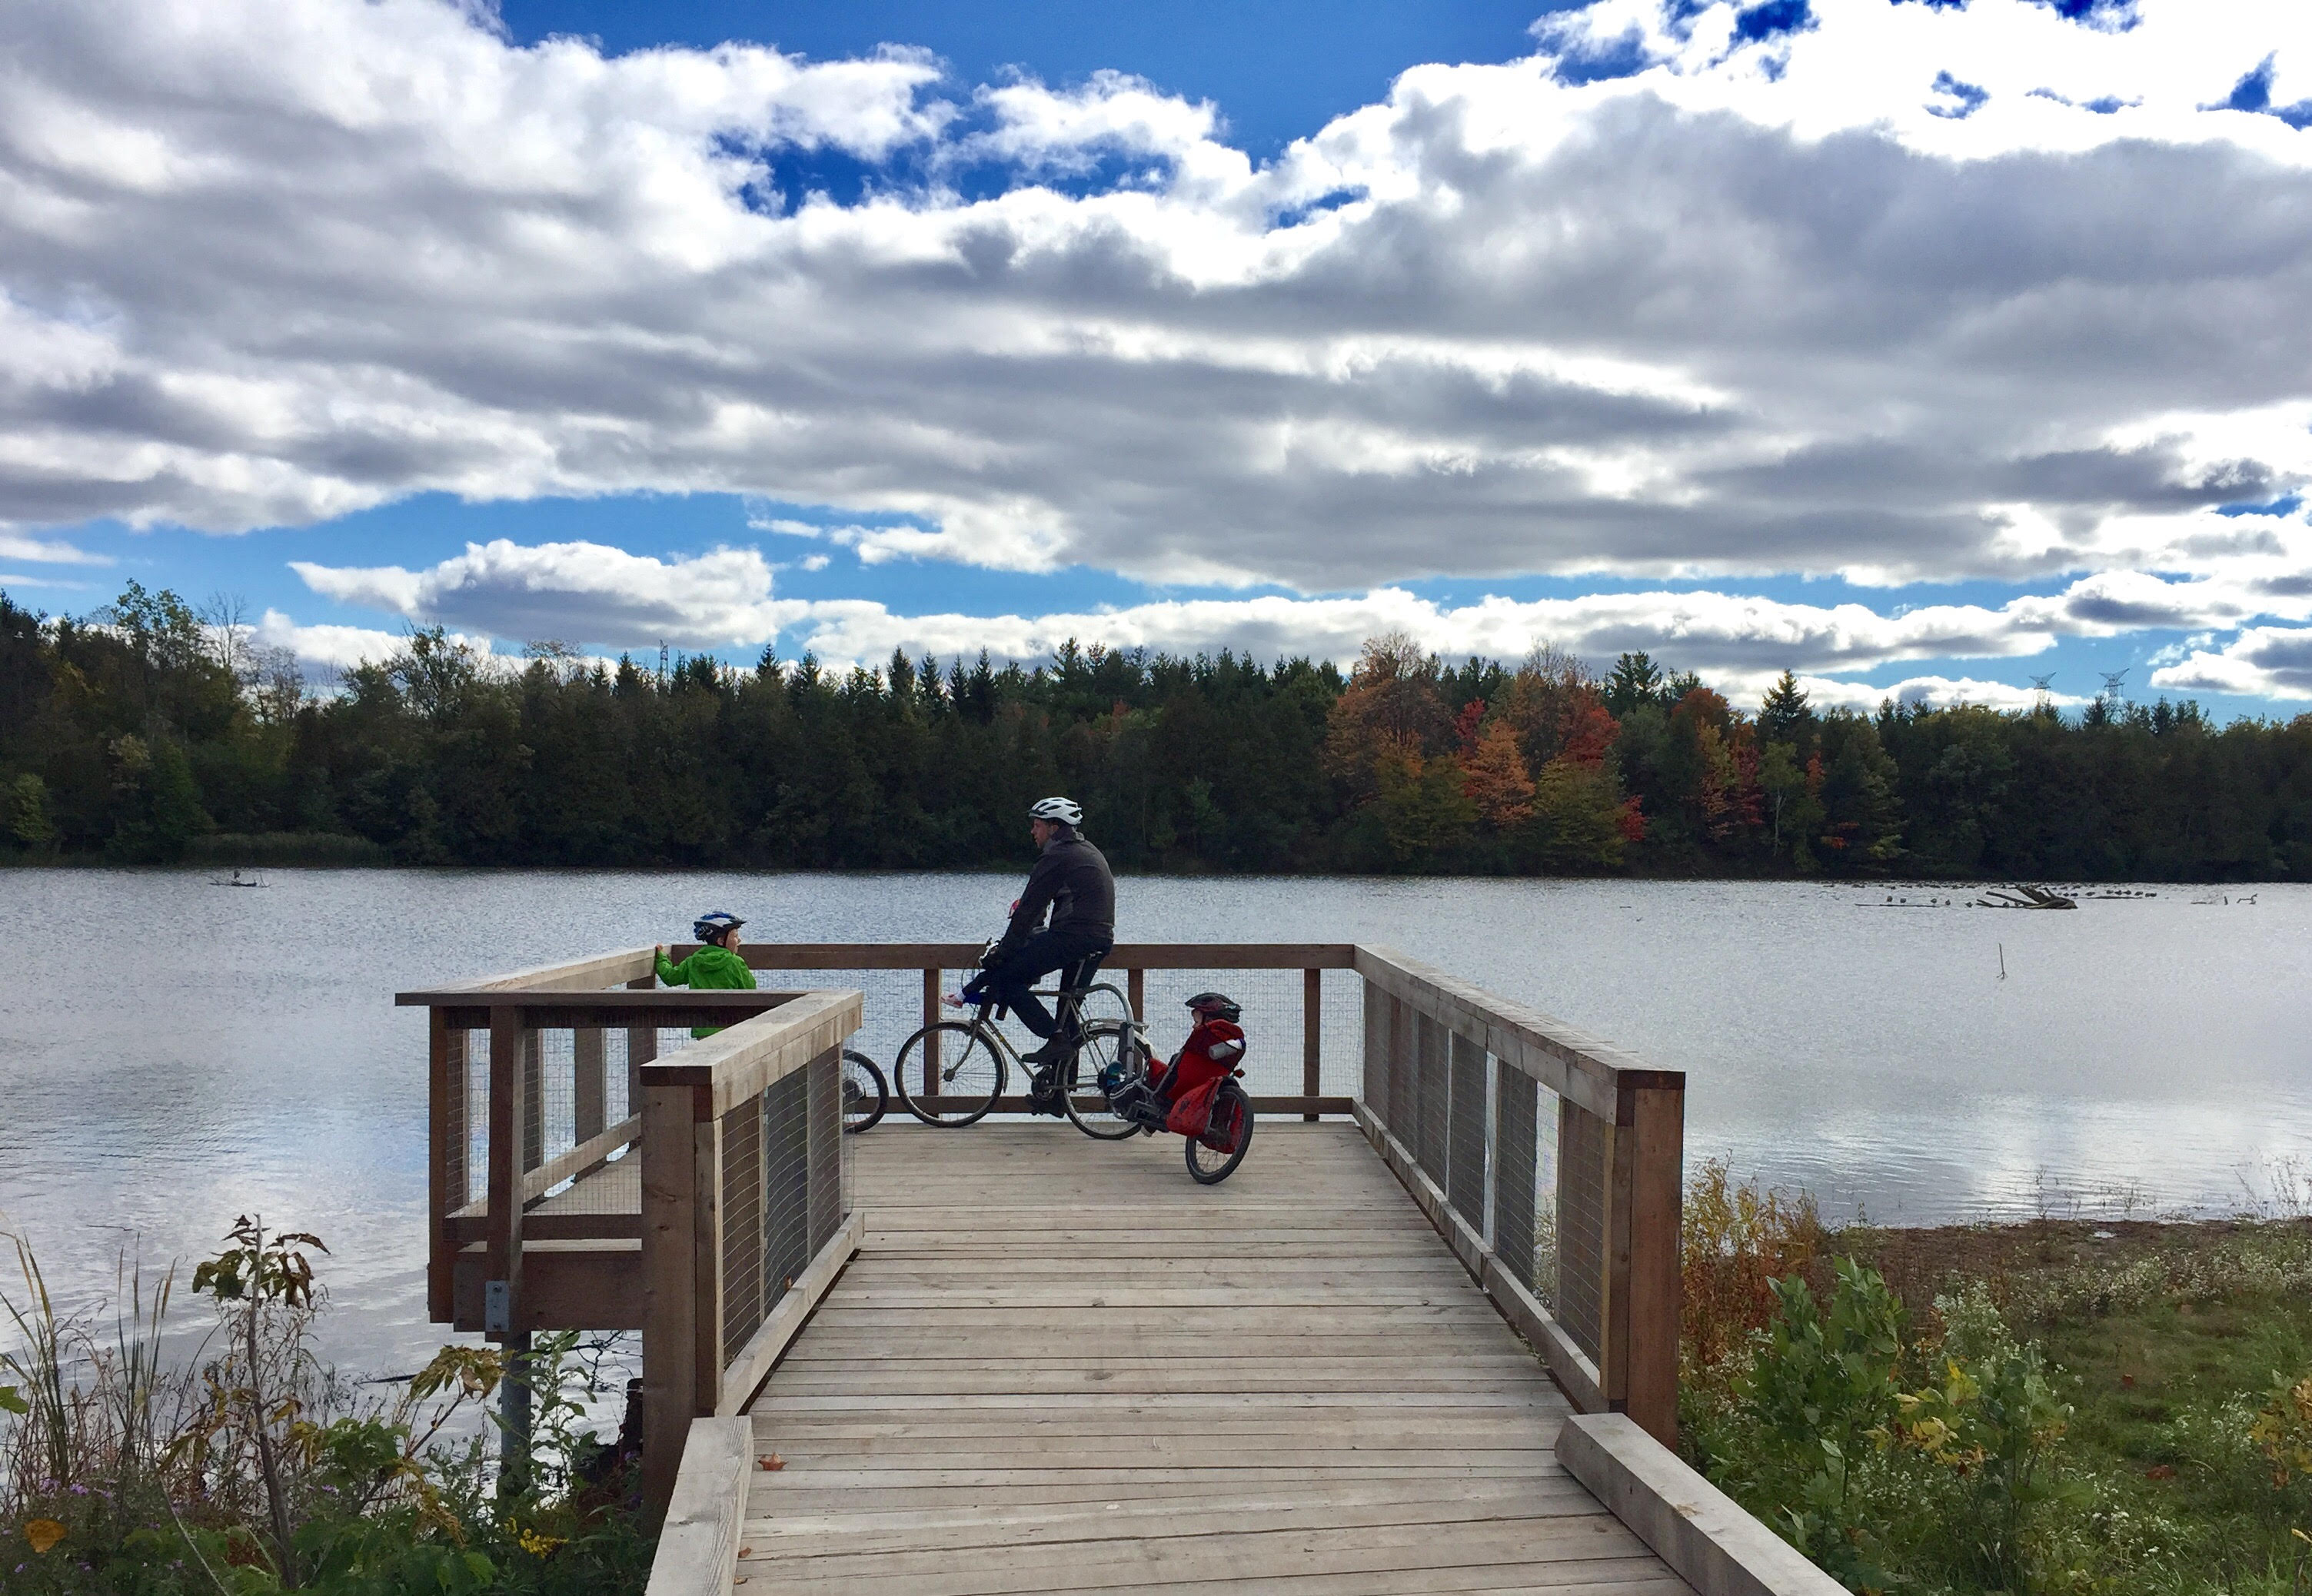 Laura Langford Milne Dam Conservation Area Fall Photo Contest Winner 2016 HI Res